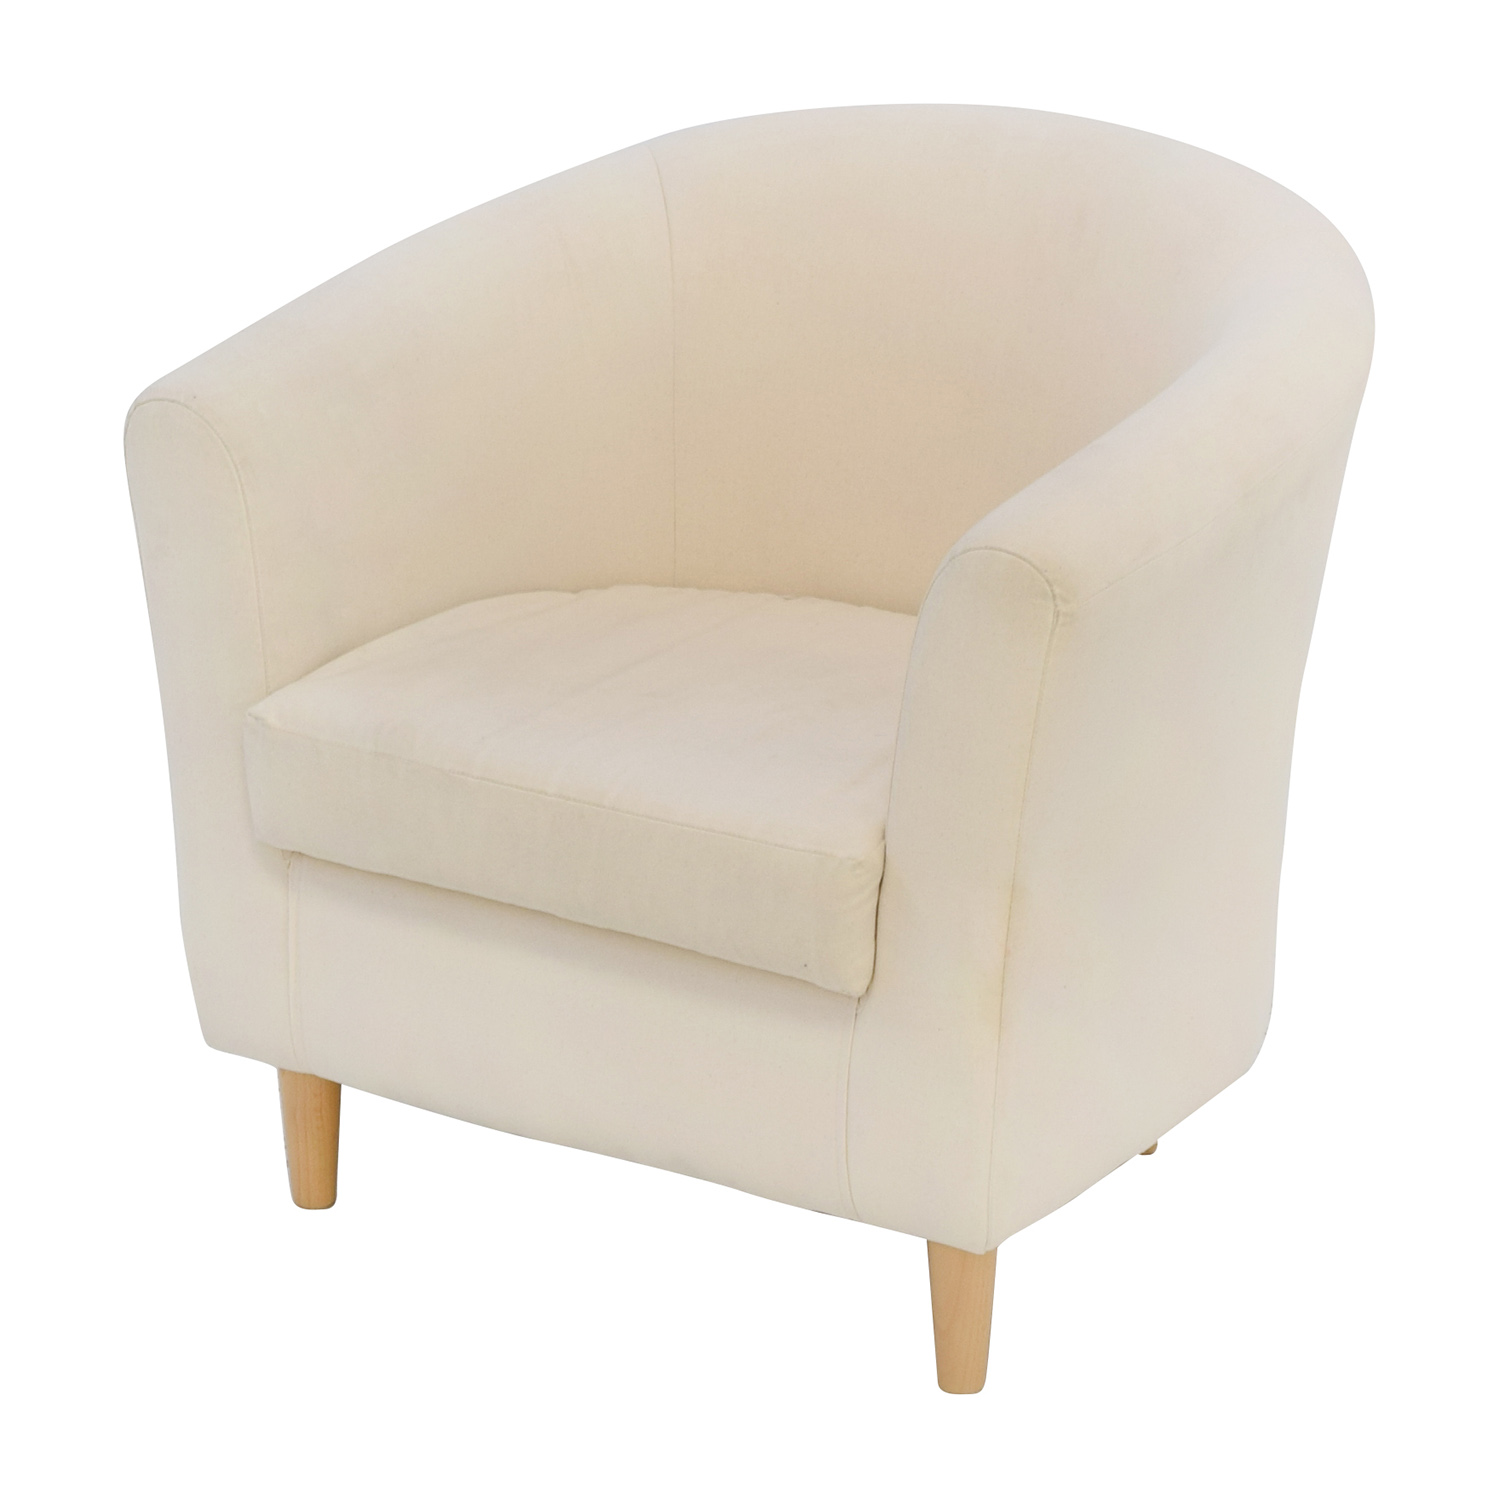 68 off cream accent chair chairs for Cream office chair